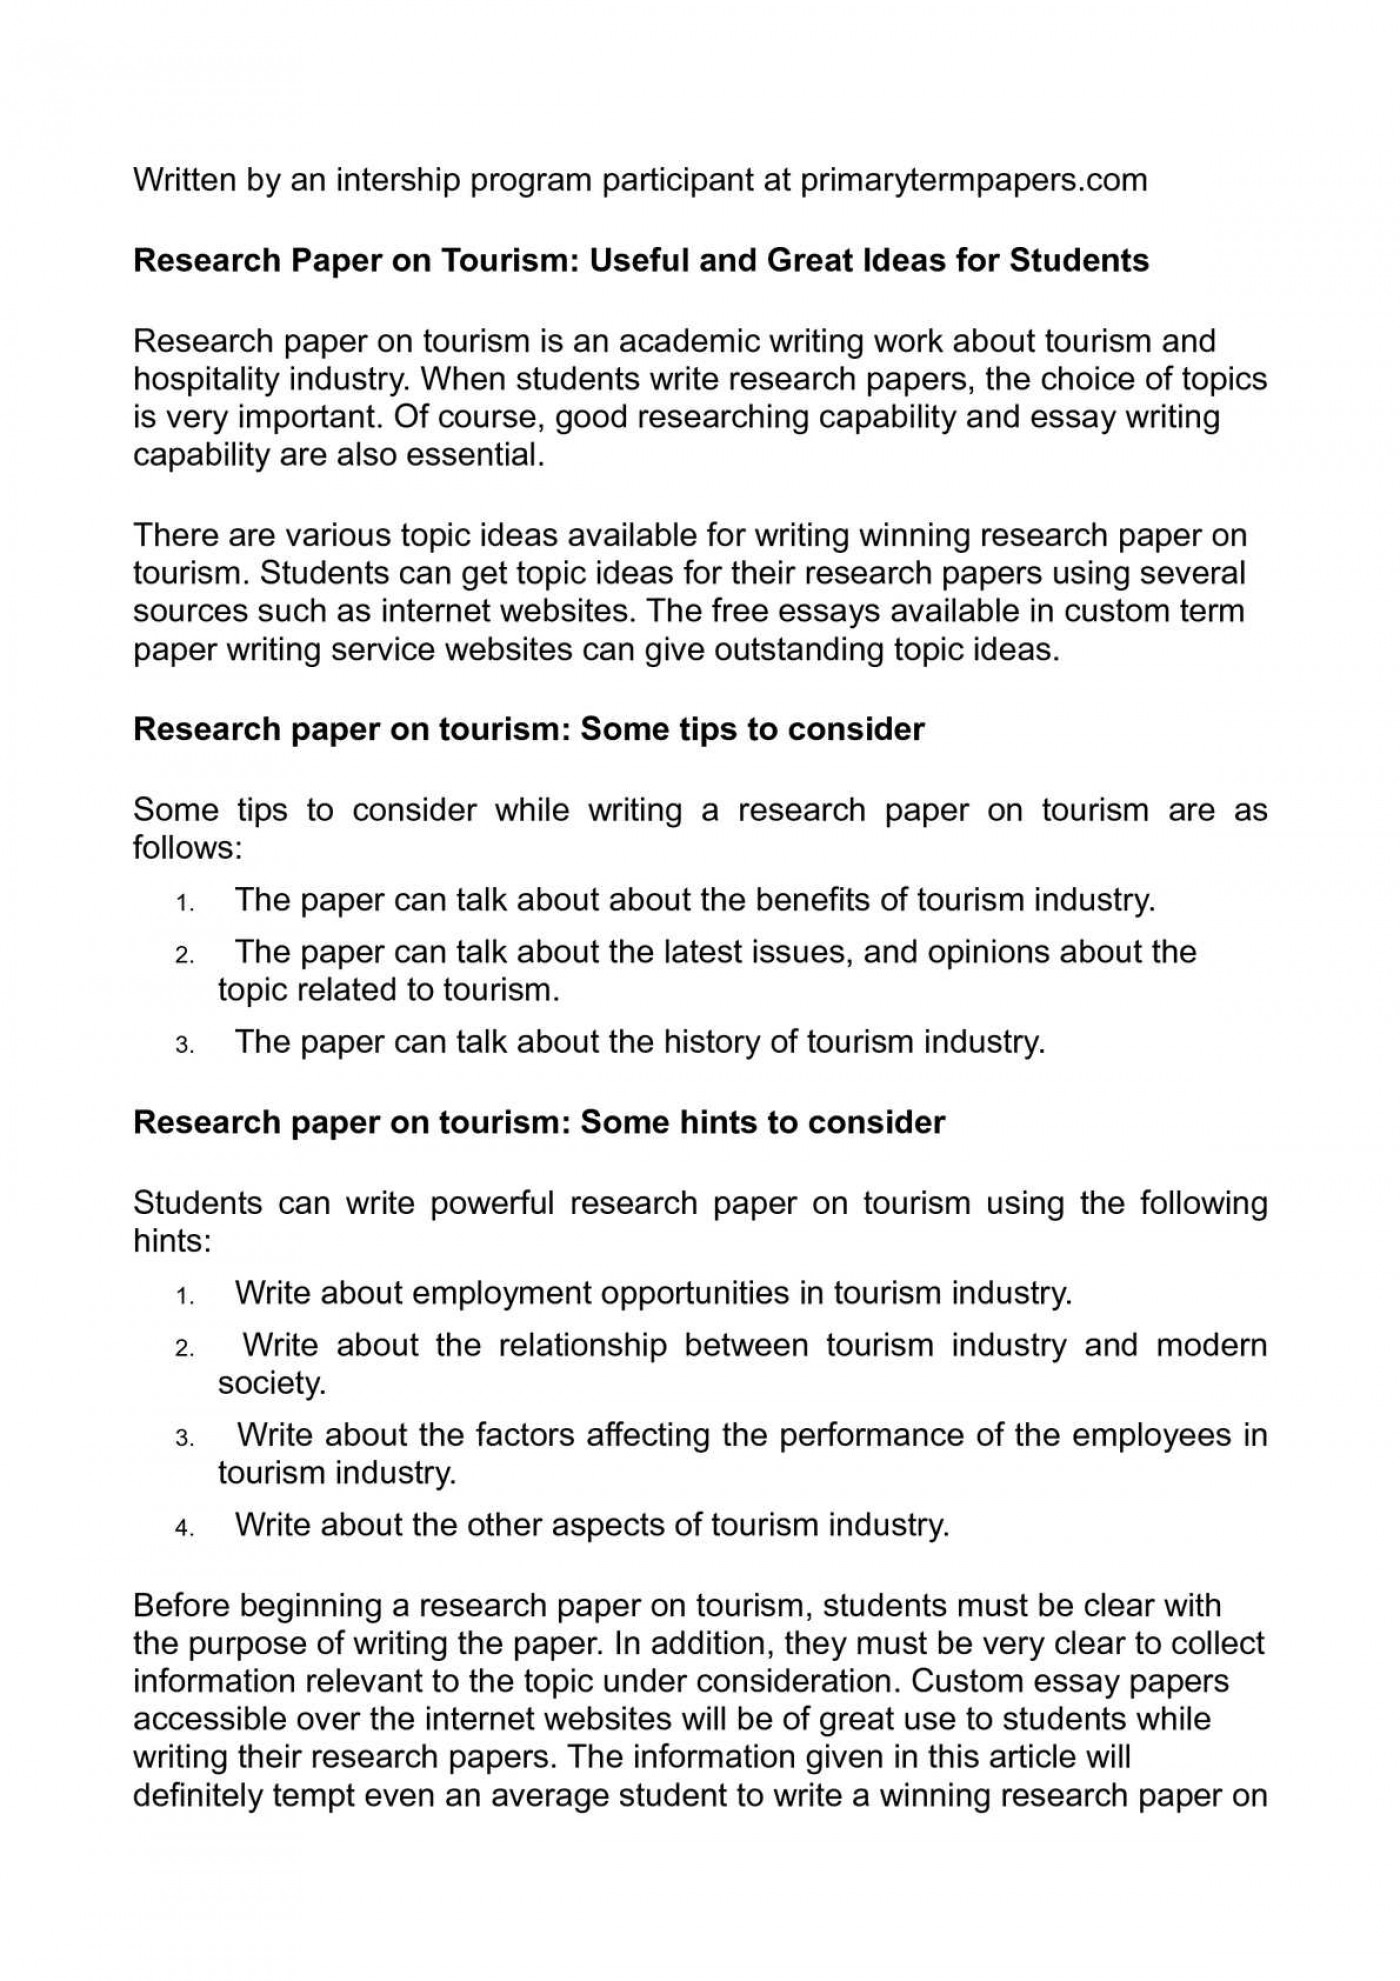 009 Research Paper Ideas For Fascinating Papers In Computer Science Middle School 1400